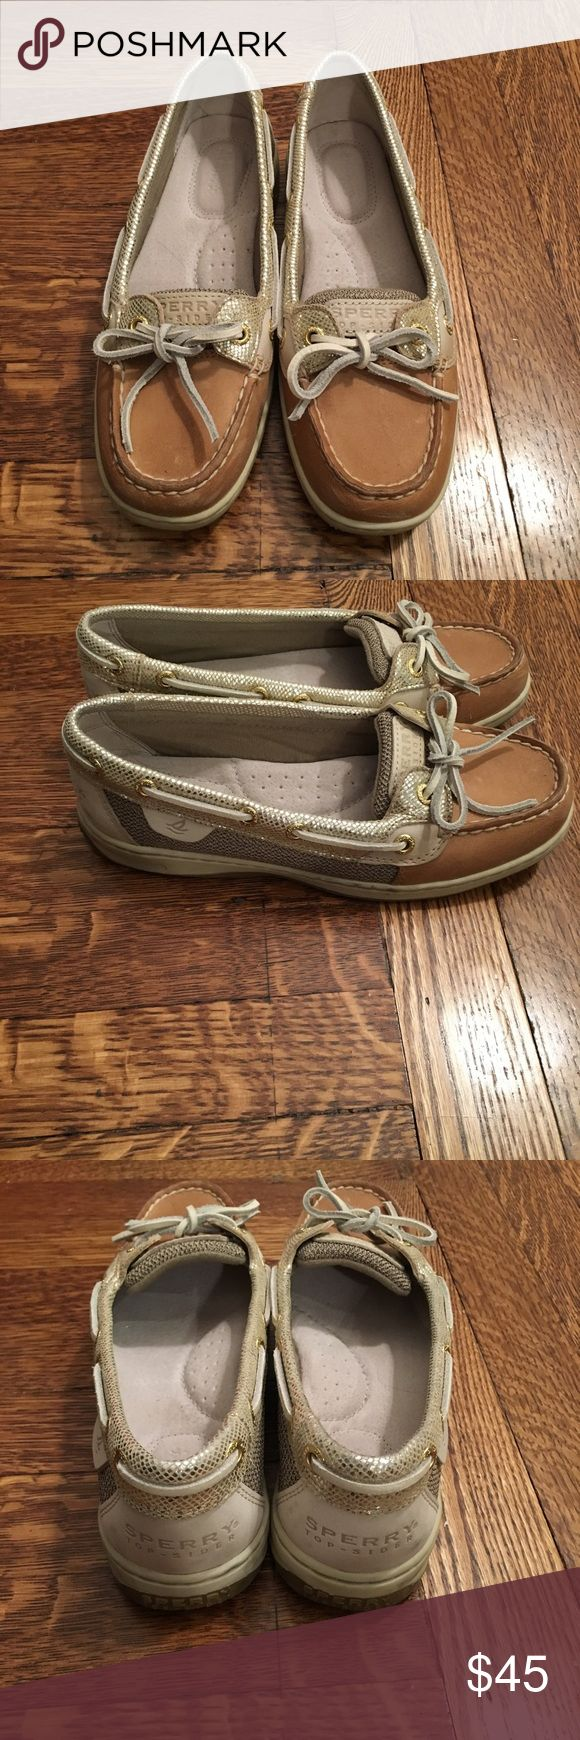 Sperry Angelfish Boat Shoes Metallic boat shoes.  Like New!! Only worn once.  Size 6 Sperry Top-Sider Shoes Flats & Loafers